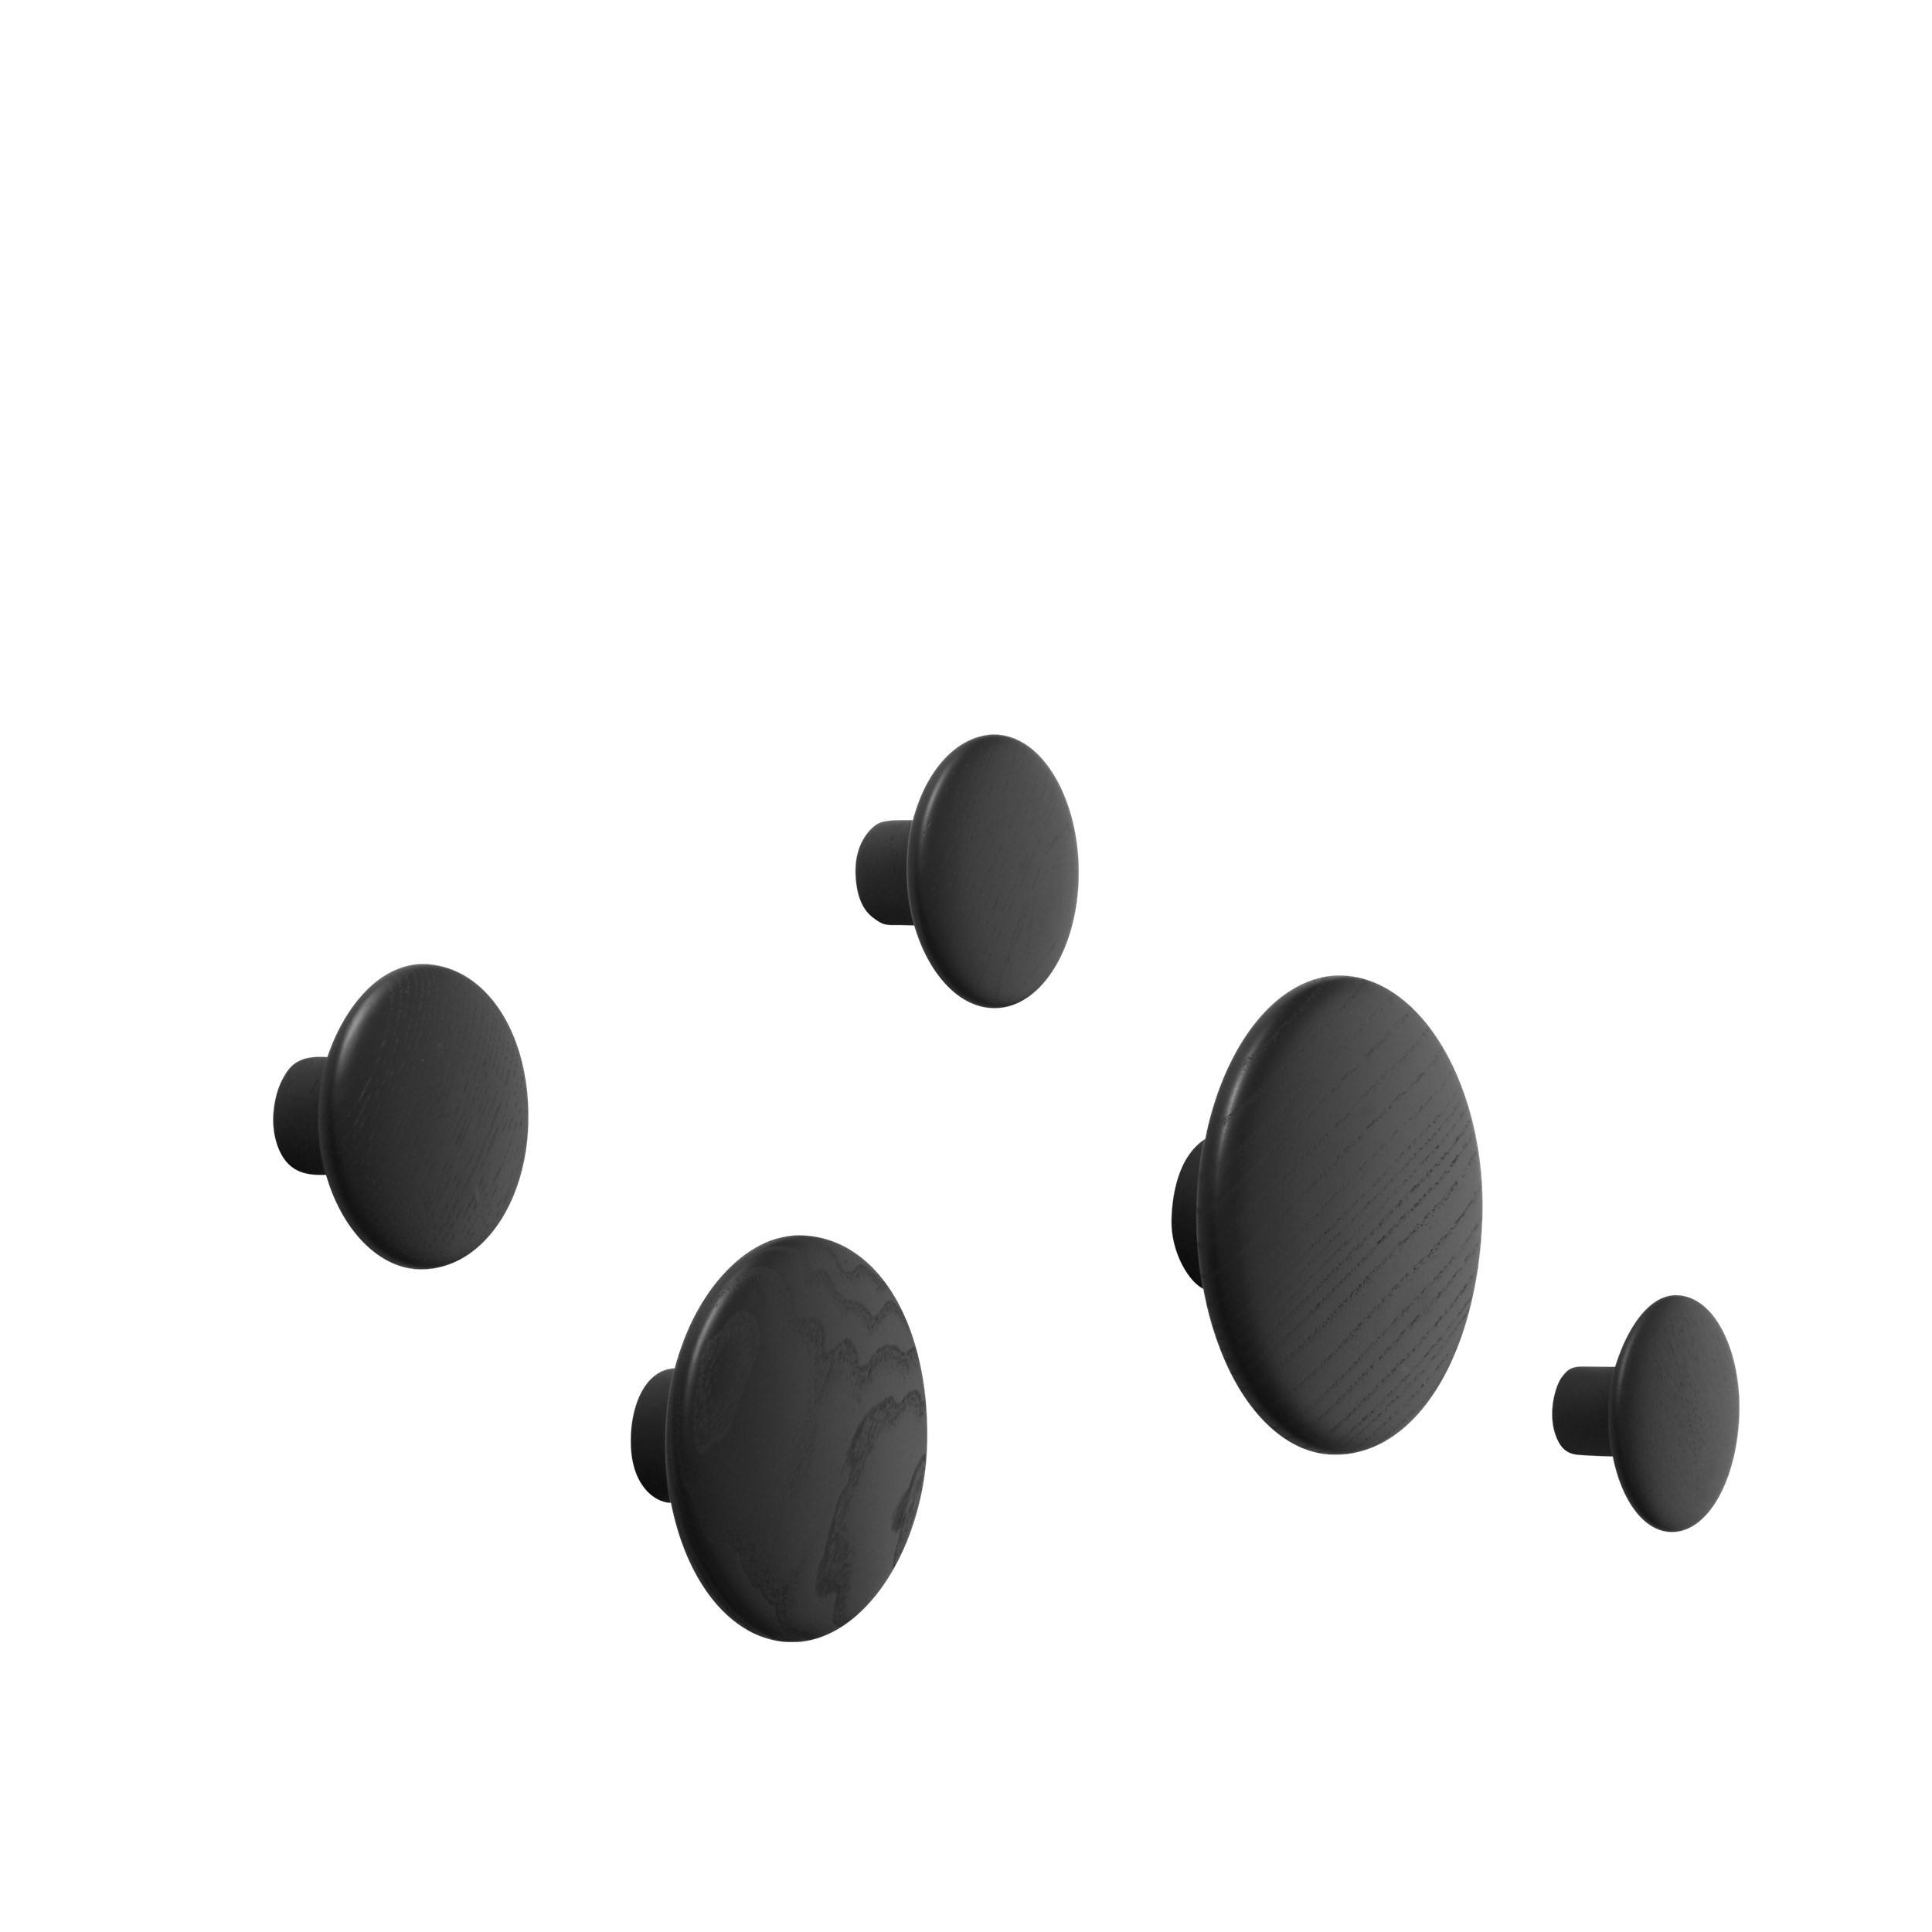 The dots set of 5 black